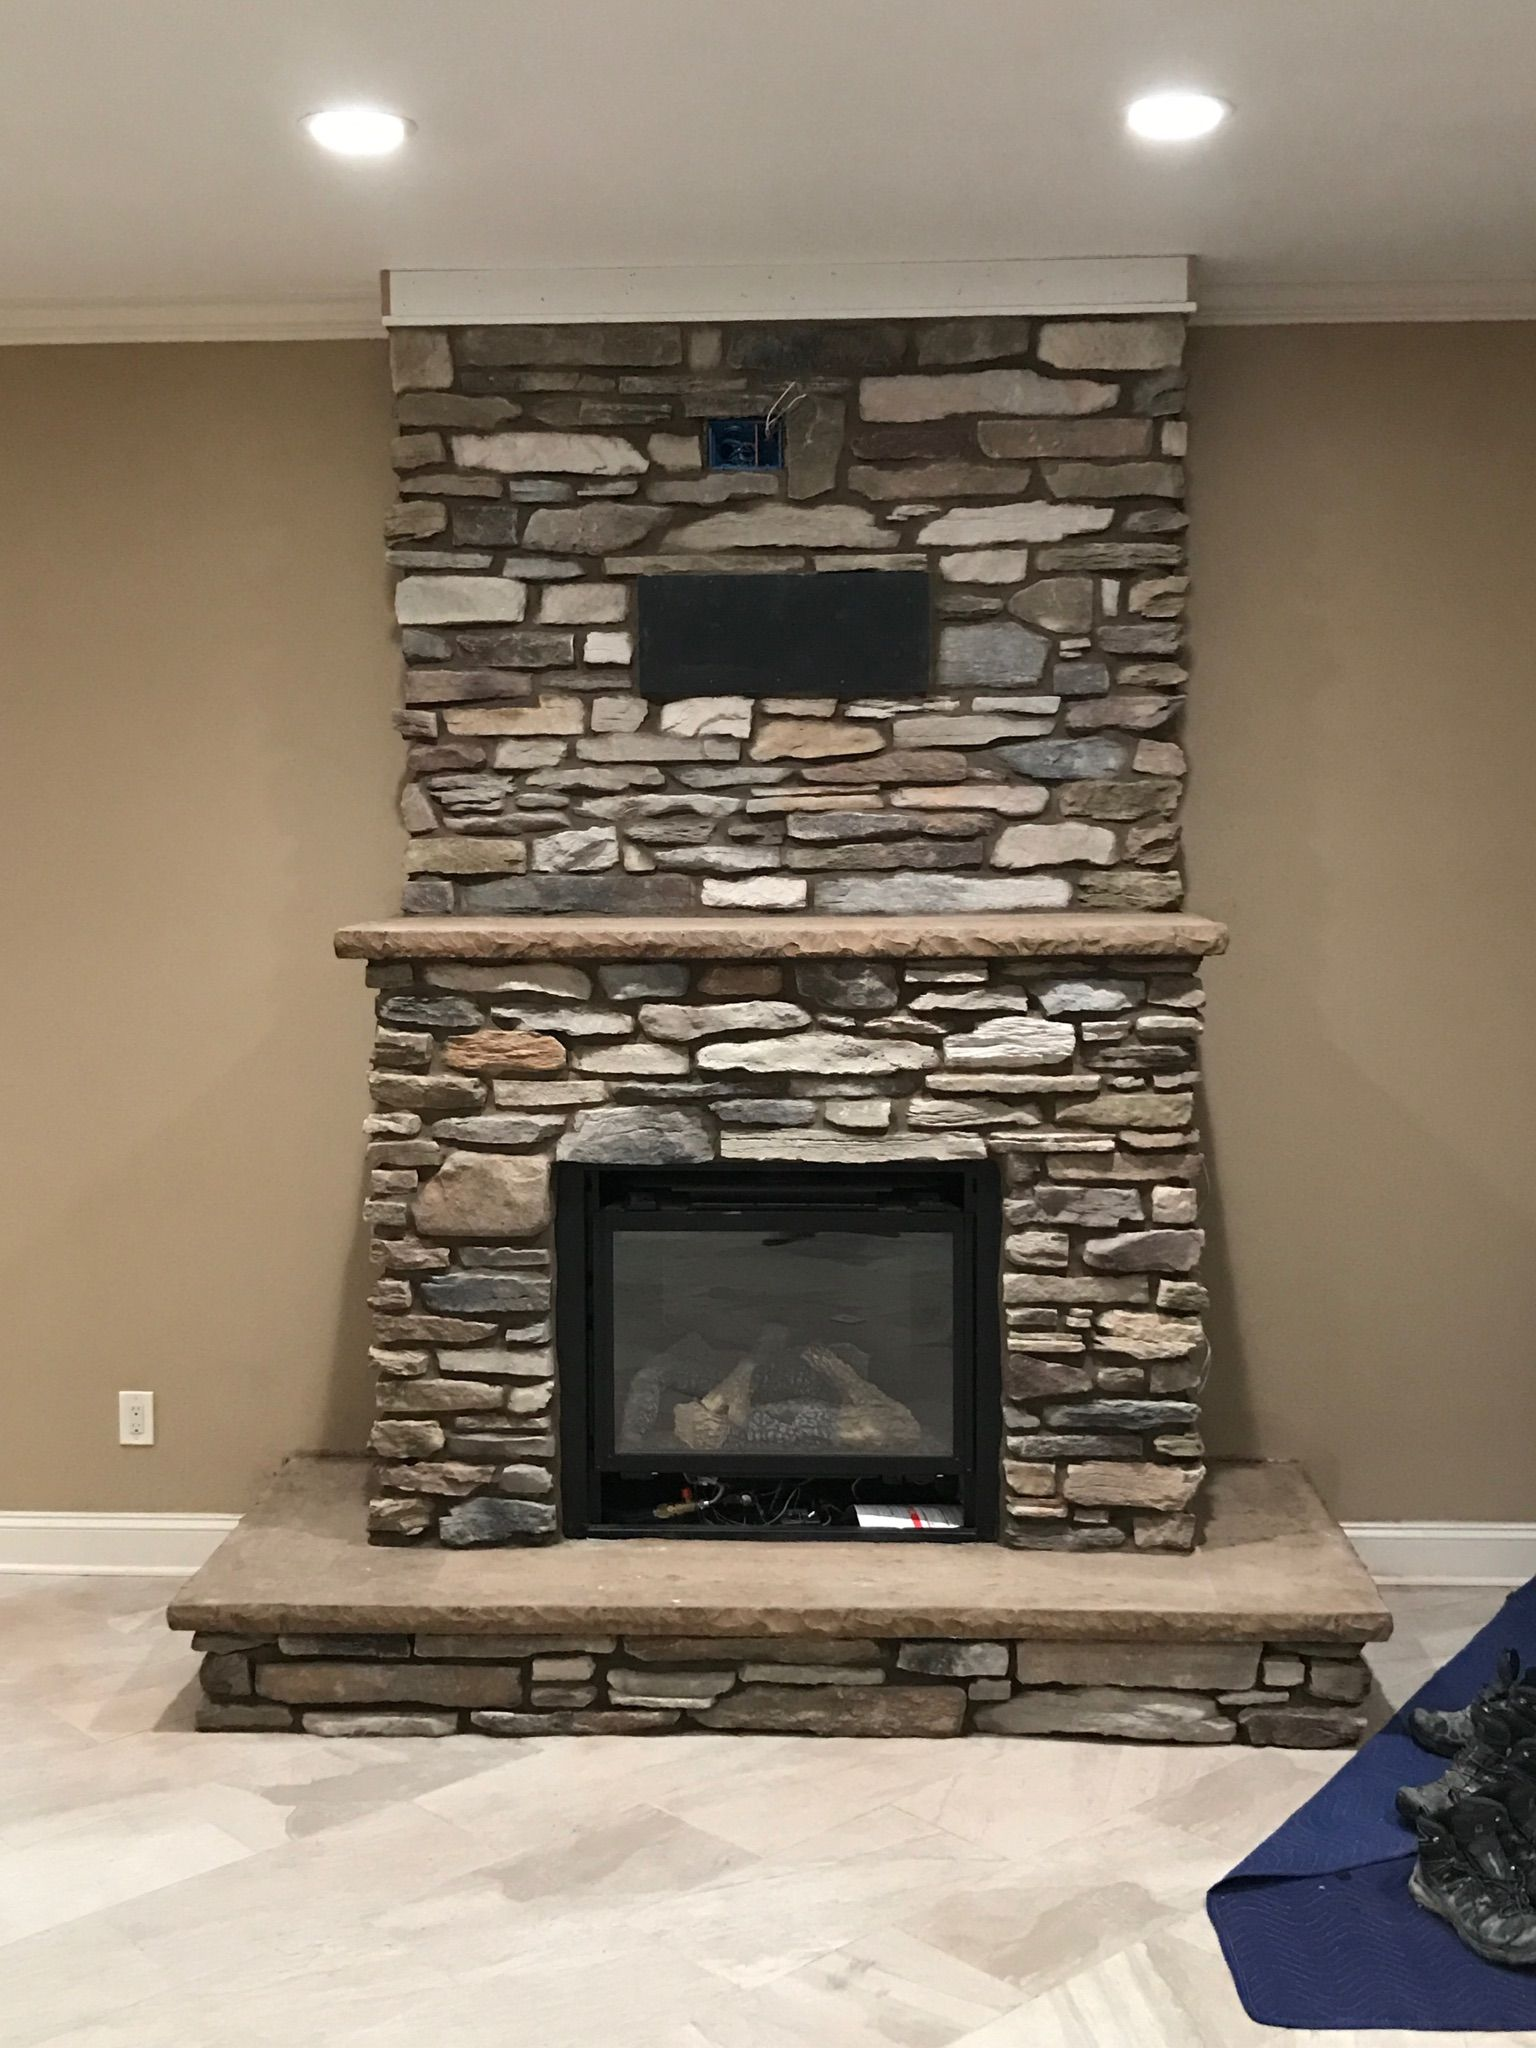 Gas Fireplace Insert With Cultured Stone Veneer And Stamped Concrete Raised  Hearth And Mantle. Last